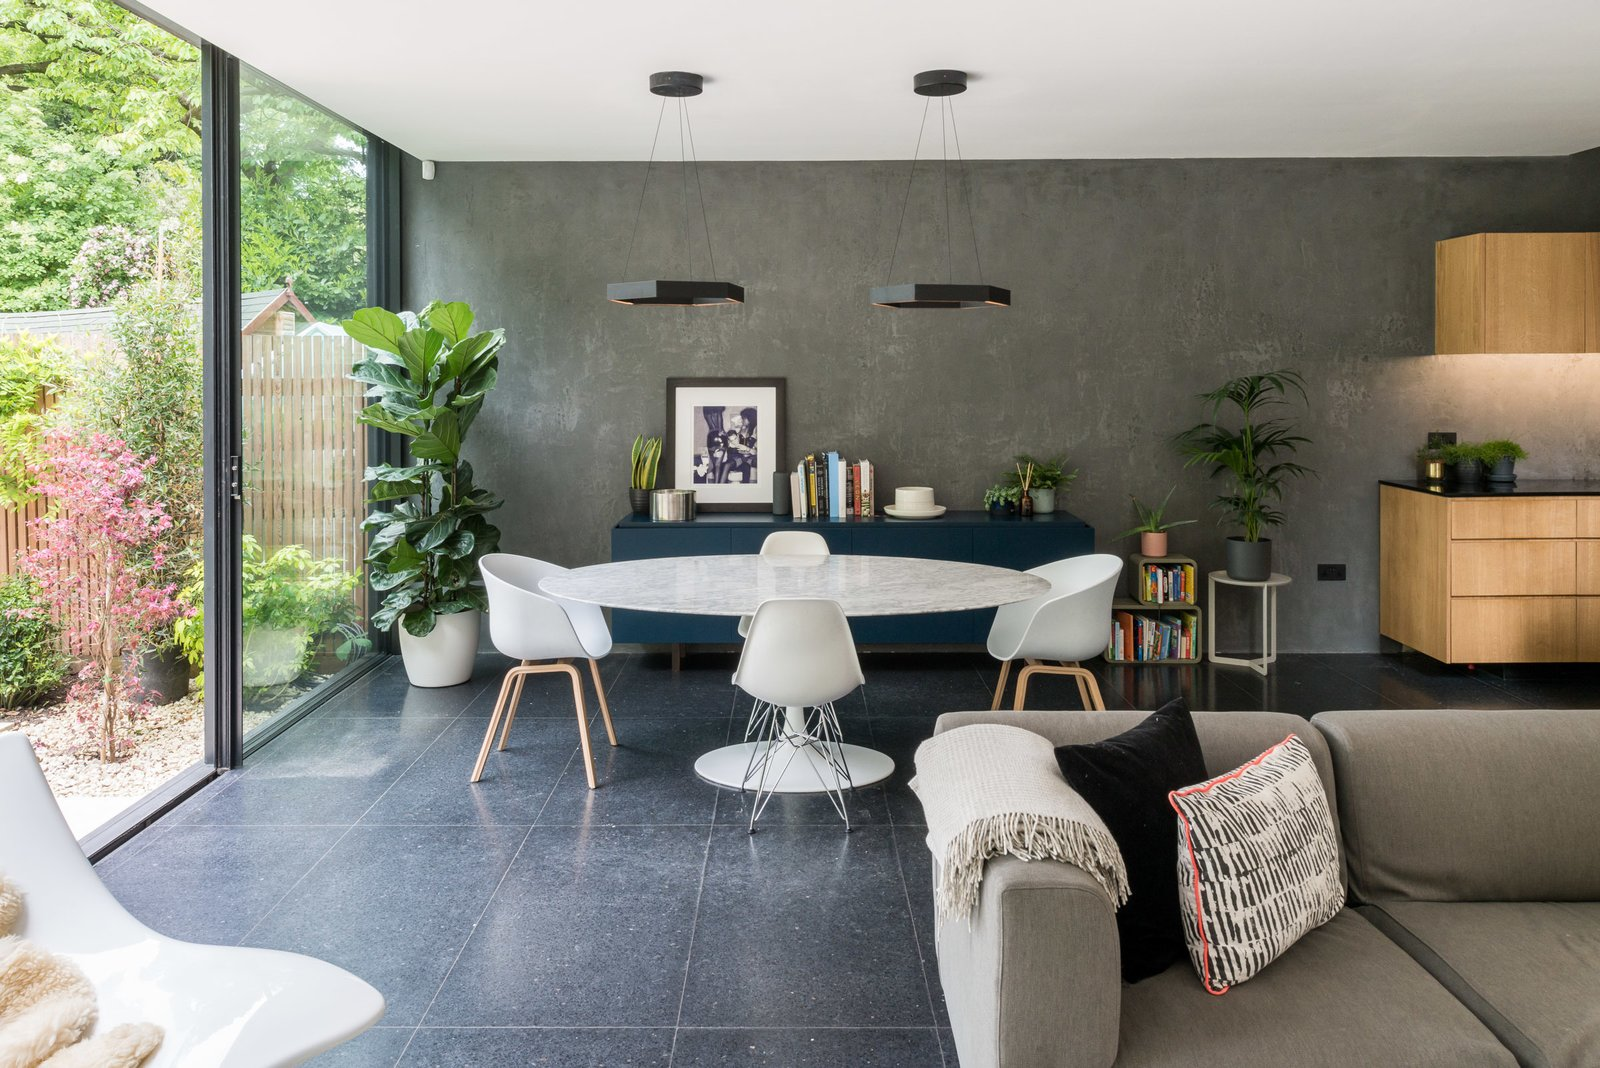 Dining, Table, Pendant, Storage, Chair, and Terrazzo A wall of polished plaster extends to the rear, accentuating the ceiling height and adding a raw, textured finish to the otherwise polished interior space.     Best Dining Storage Terrazzo Photos from A Swoon-Worthy London Apartment Is Listed For £1.8M